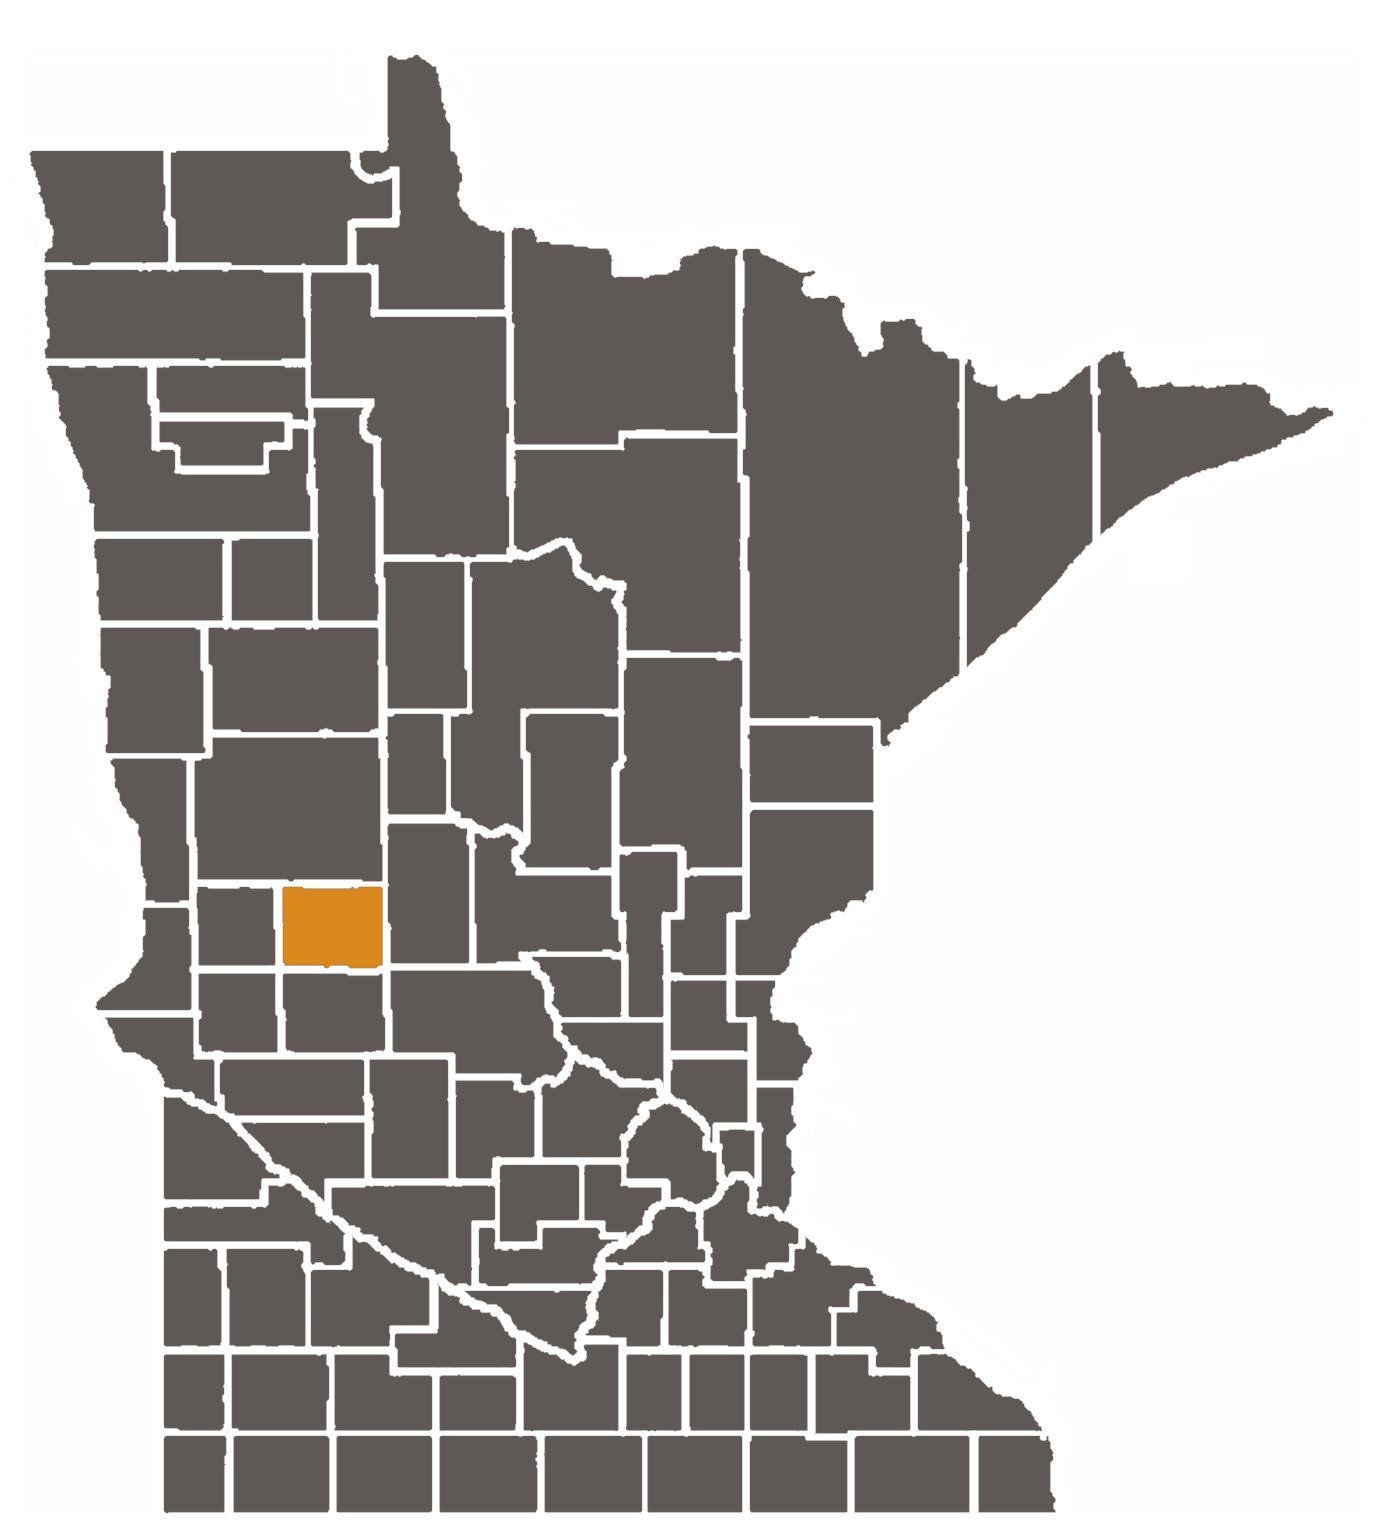 Minnesota map with Douglas County highlighted.